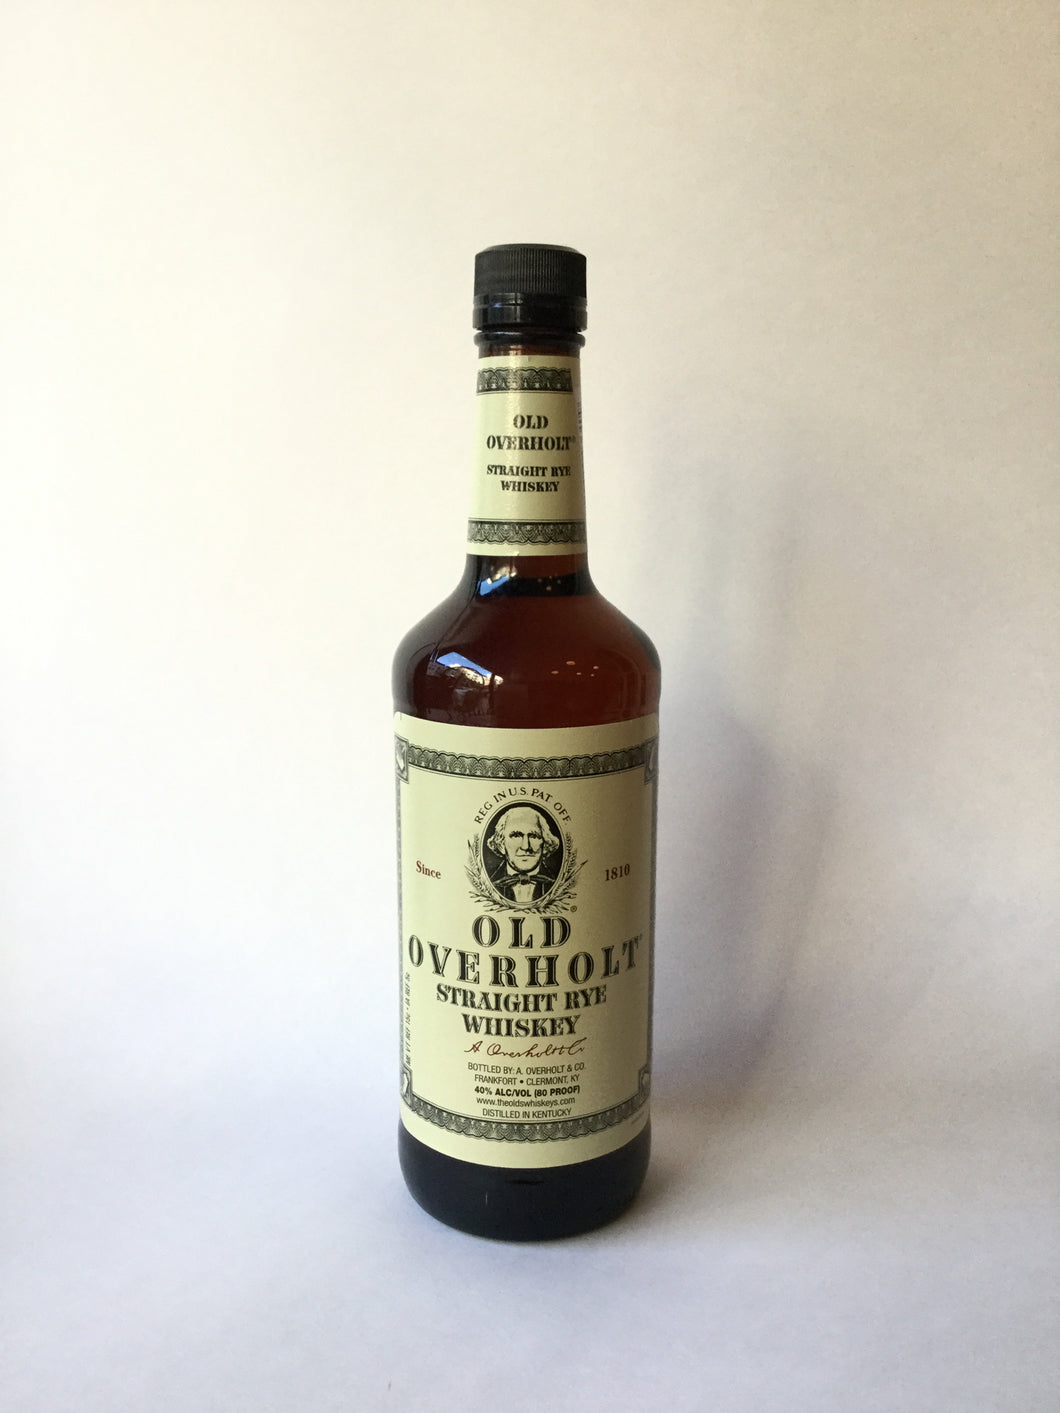 Old Overholt Straight Rye Whiskey, 750ml - Frankly Wines